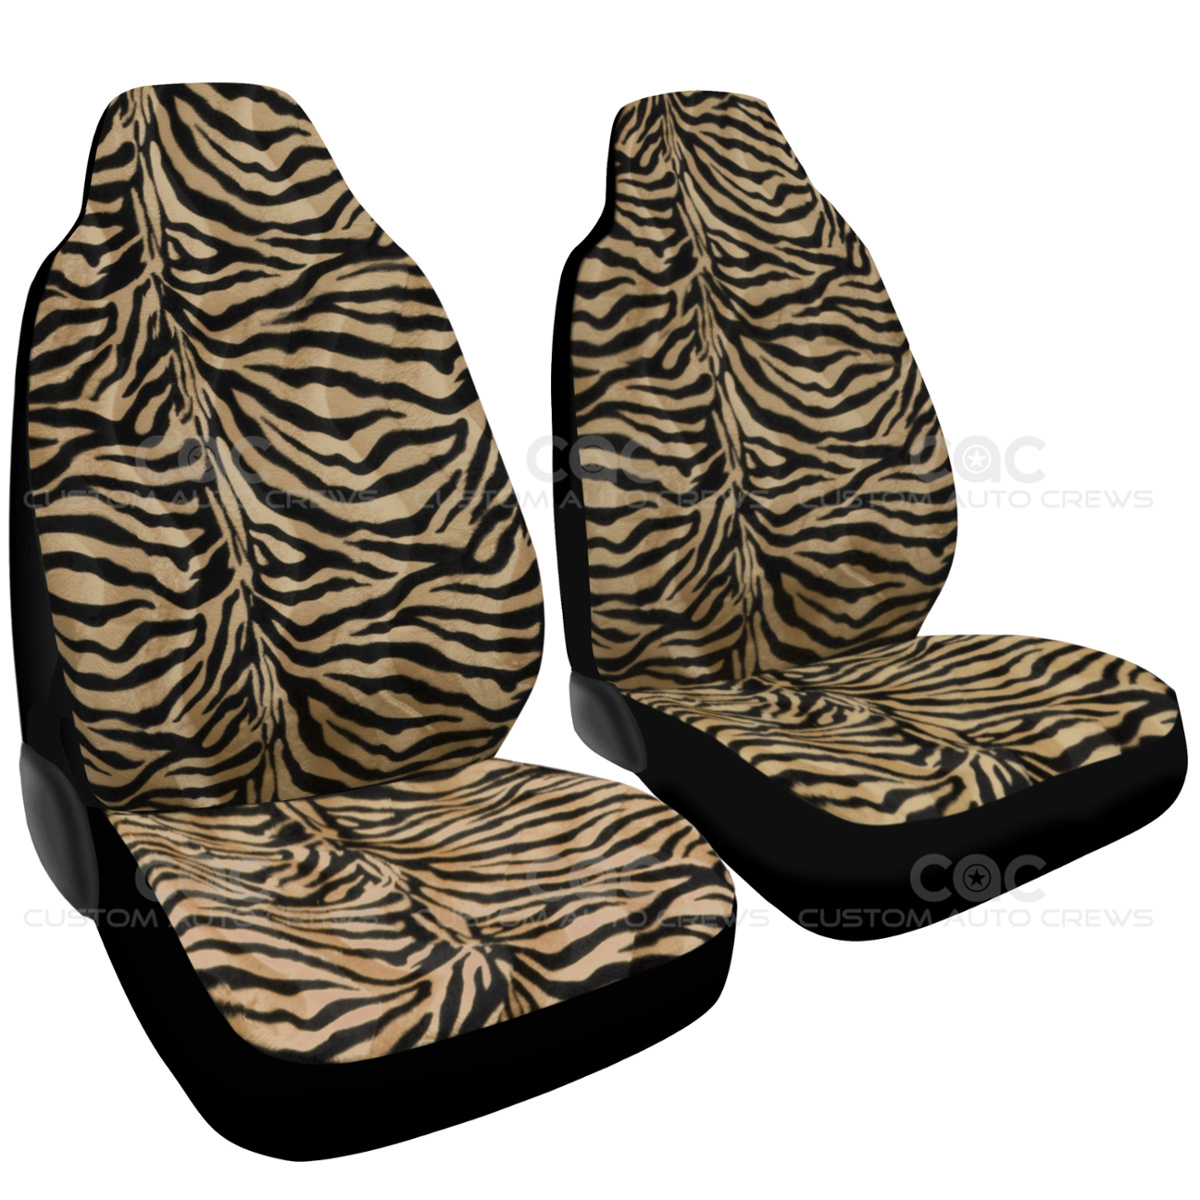 Fur Zebra Print Car Seat Covers